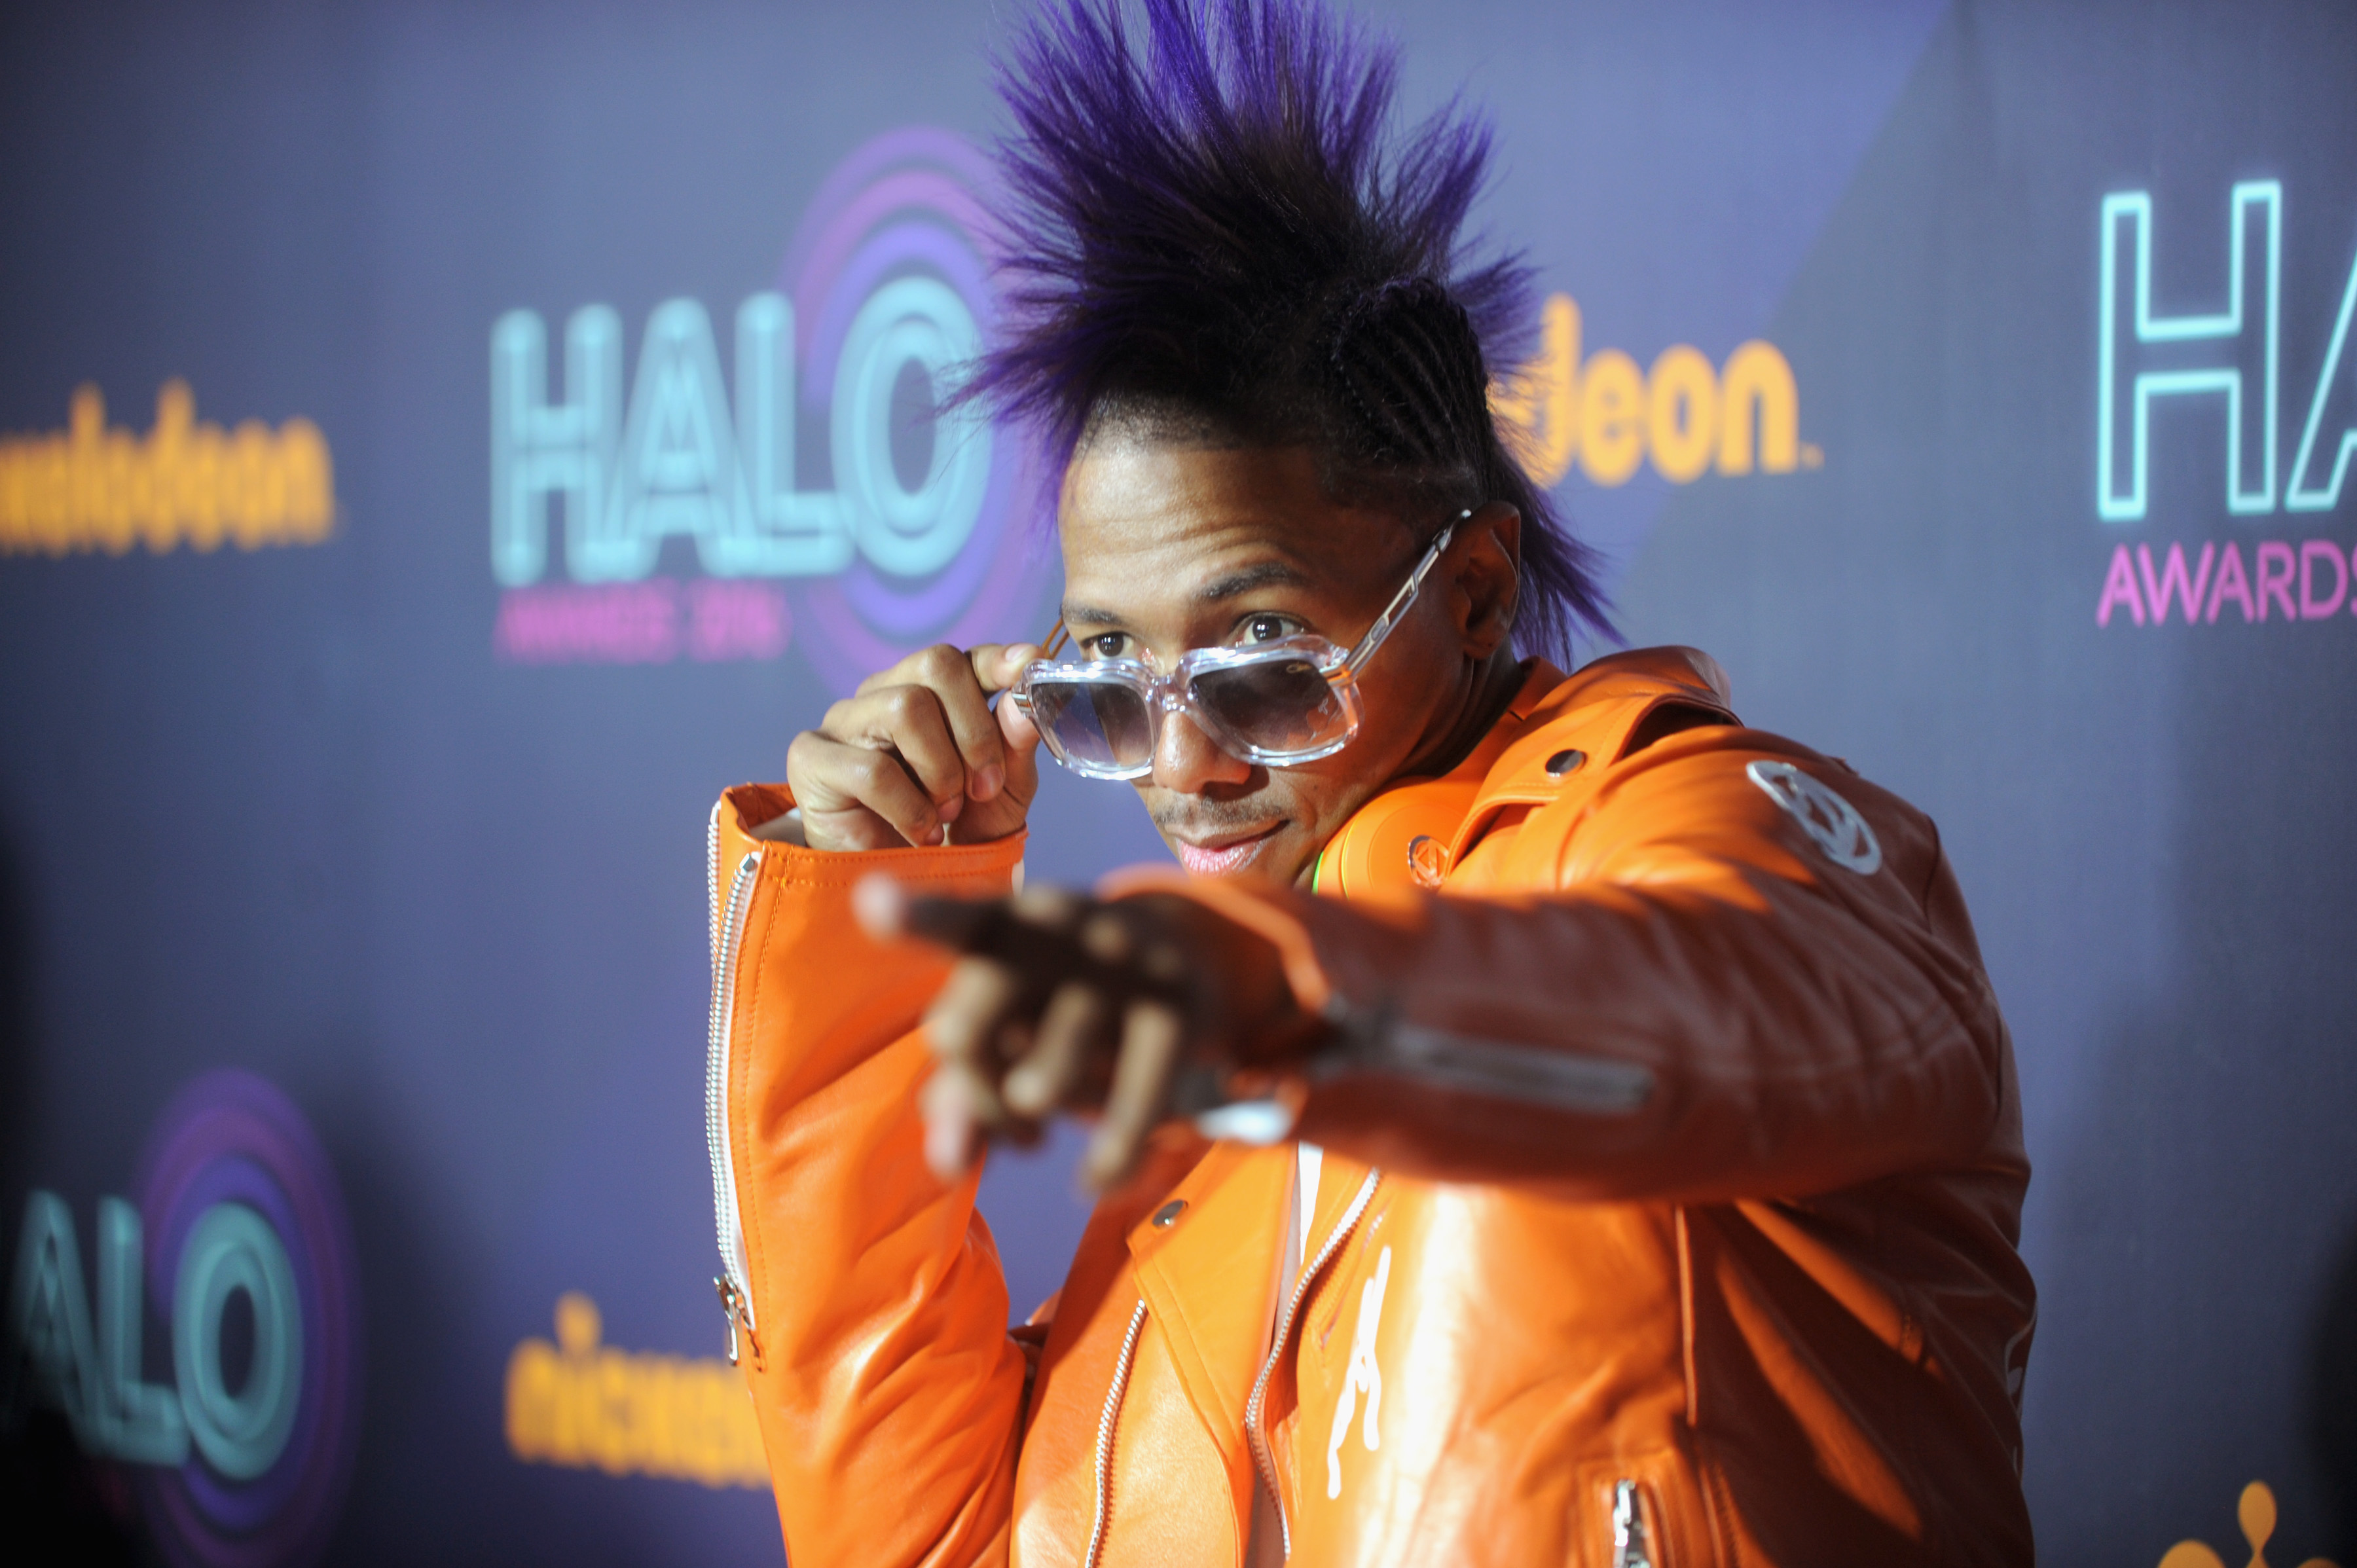 Nick Cannon attends the 2016 Nickelodeon HALO awards on November 11, 2016. (Photo by Brad Barket/Getty Images for Nickelodeon)